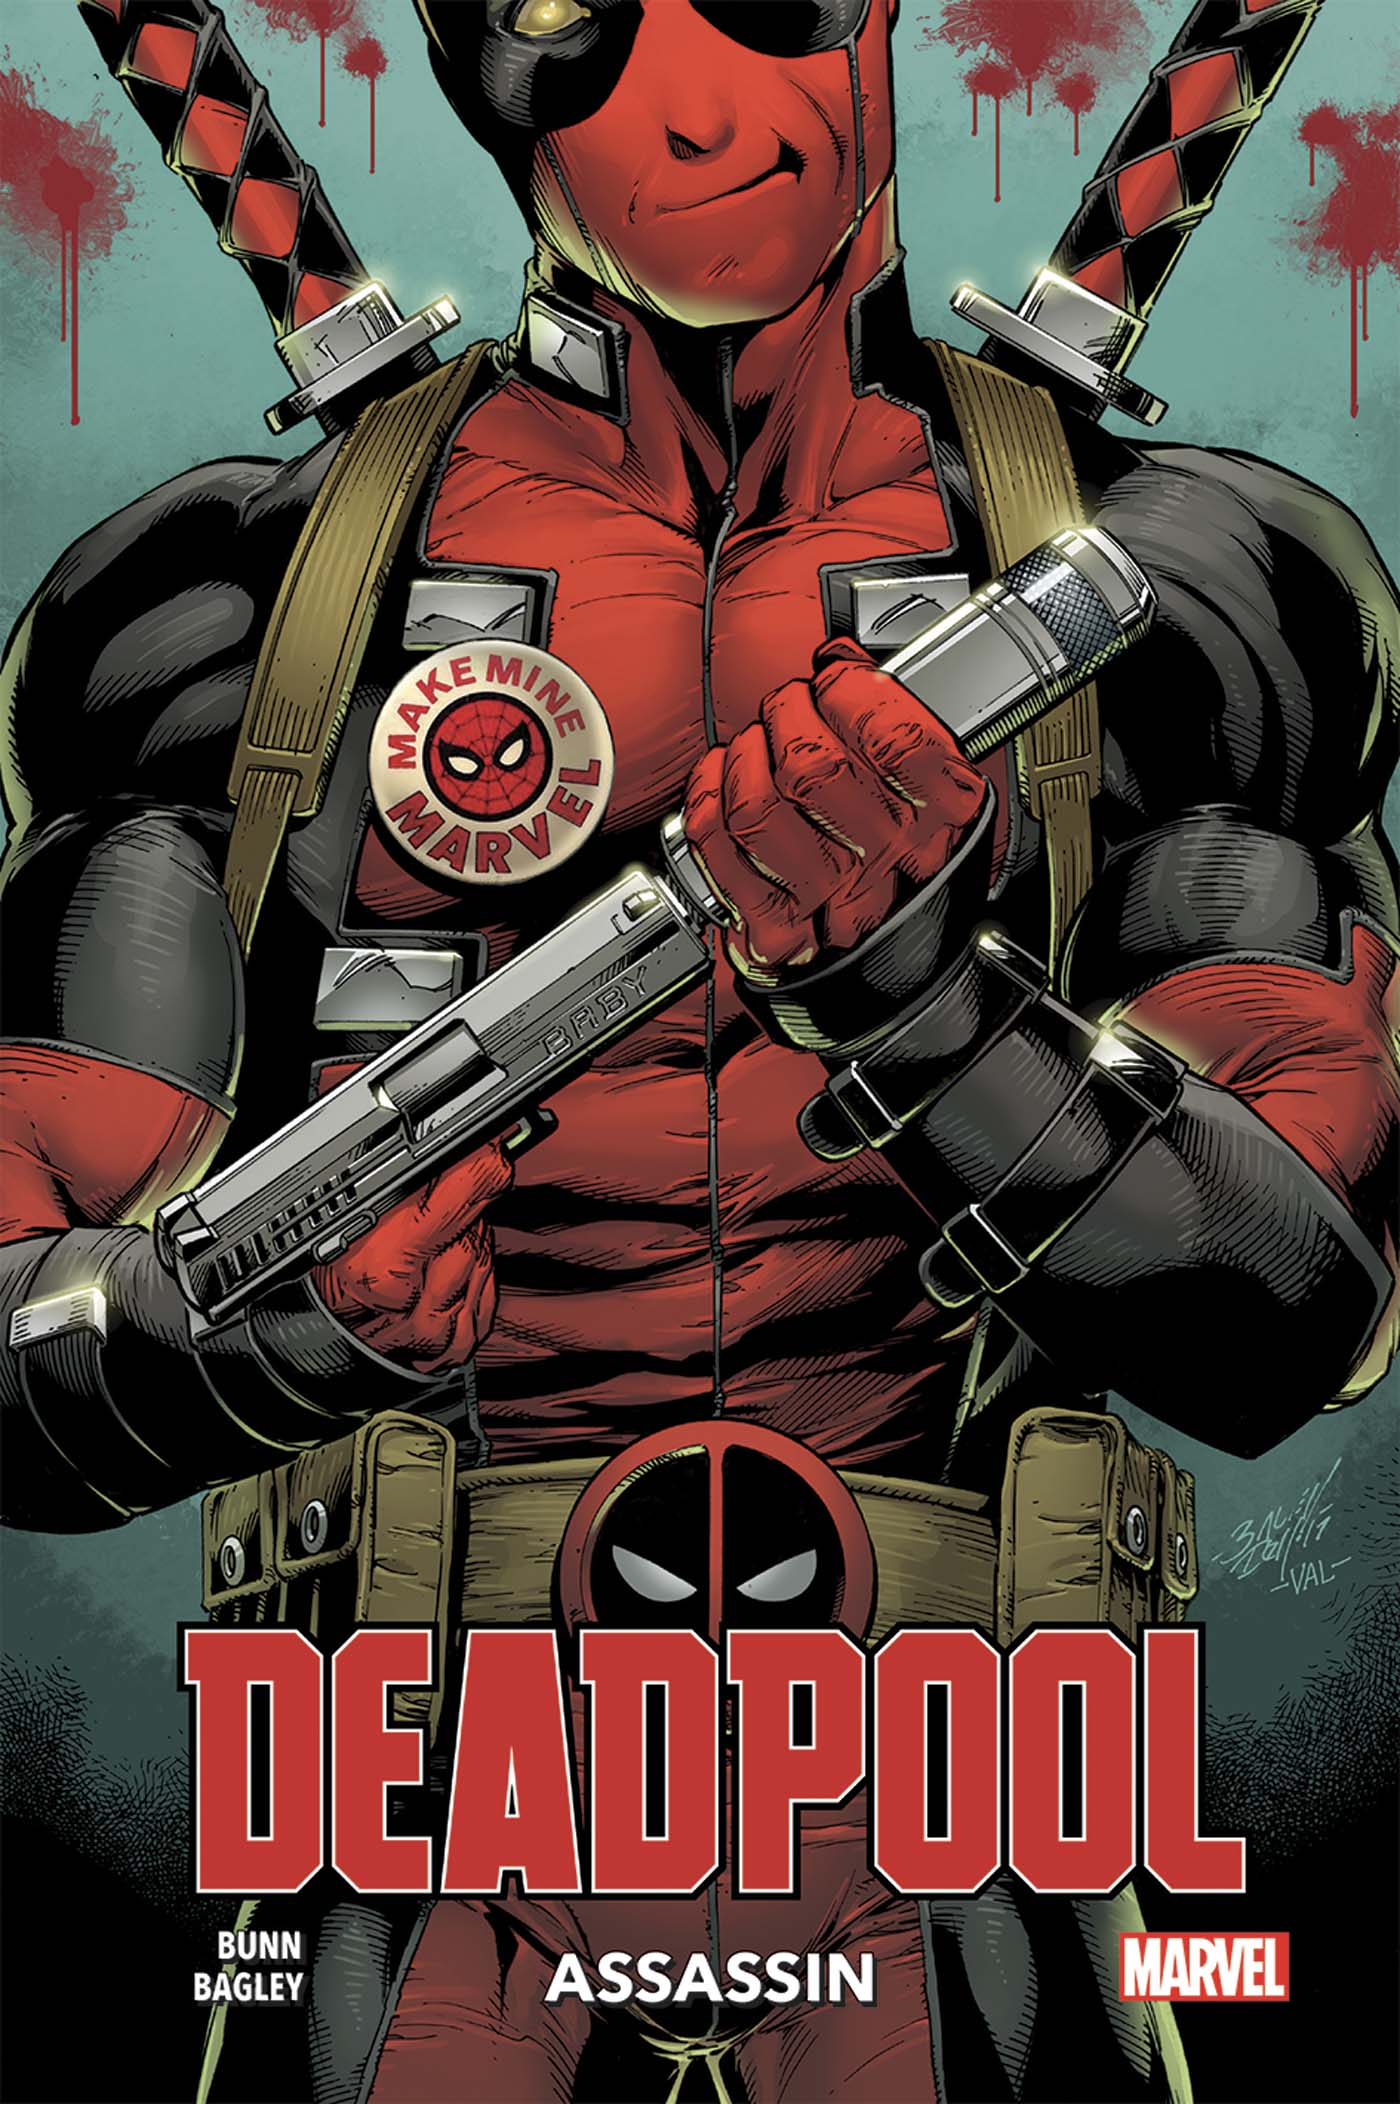 DEADPOOL ASSASSIN (VF)